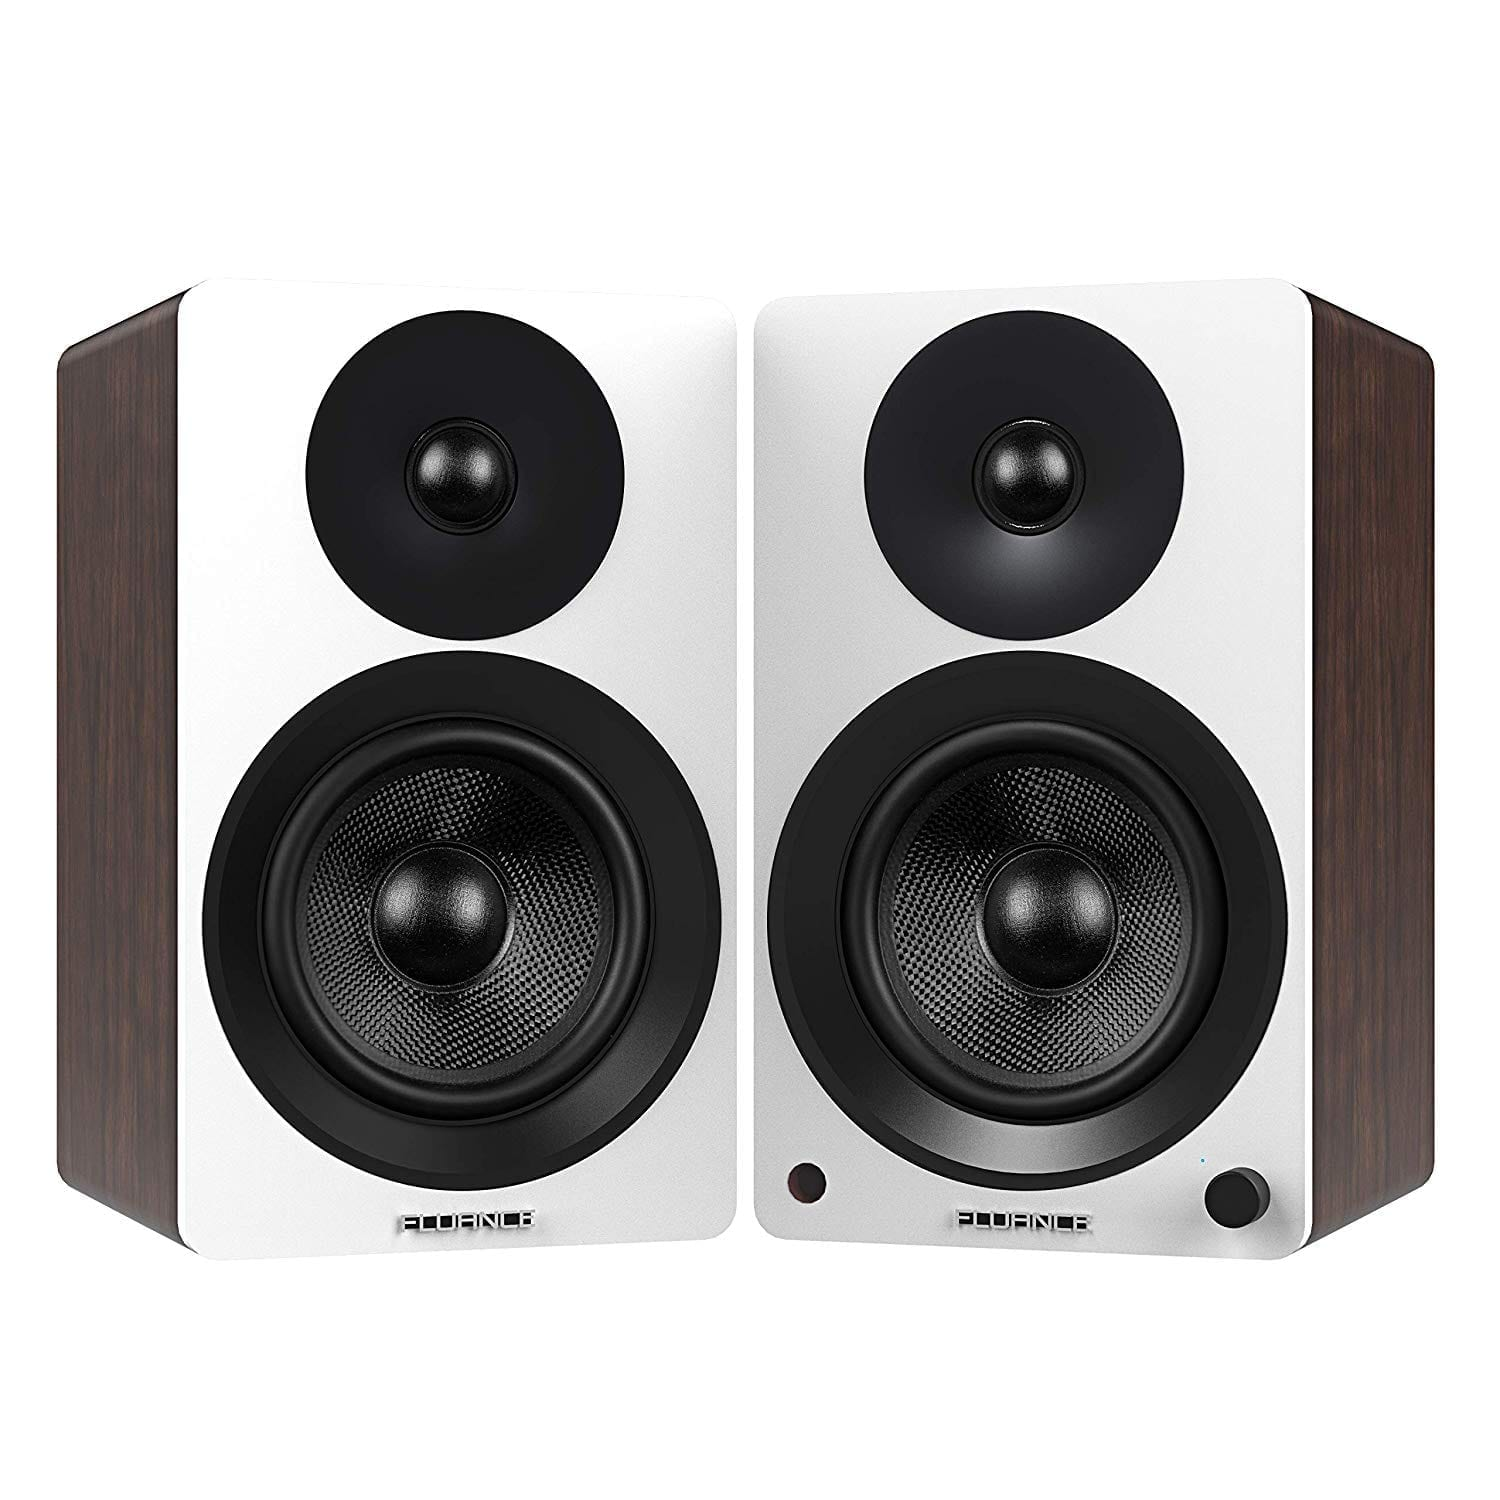 Fluance Ai60 2.0 Bookshelf Speakers